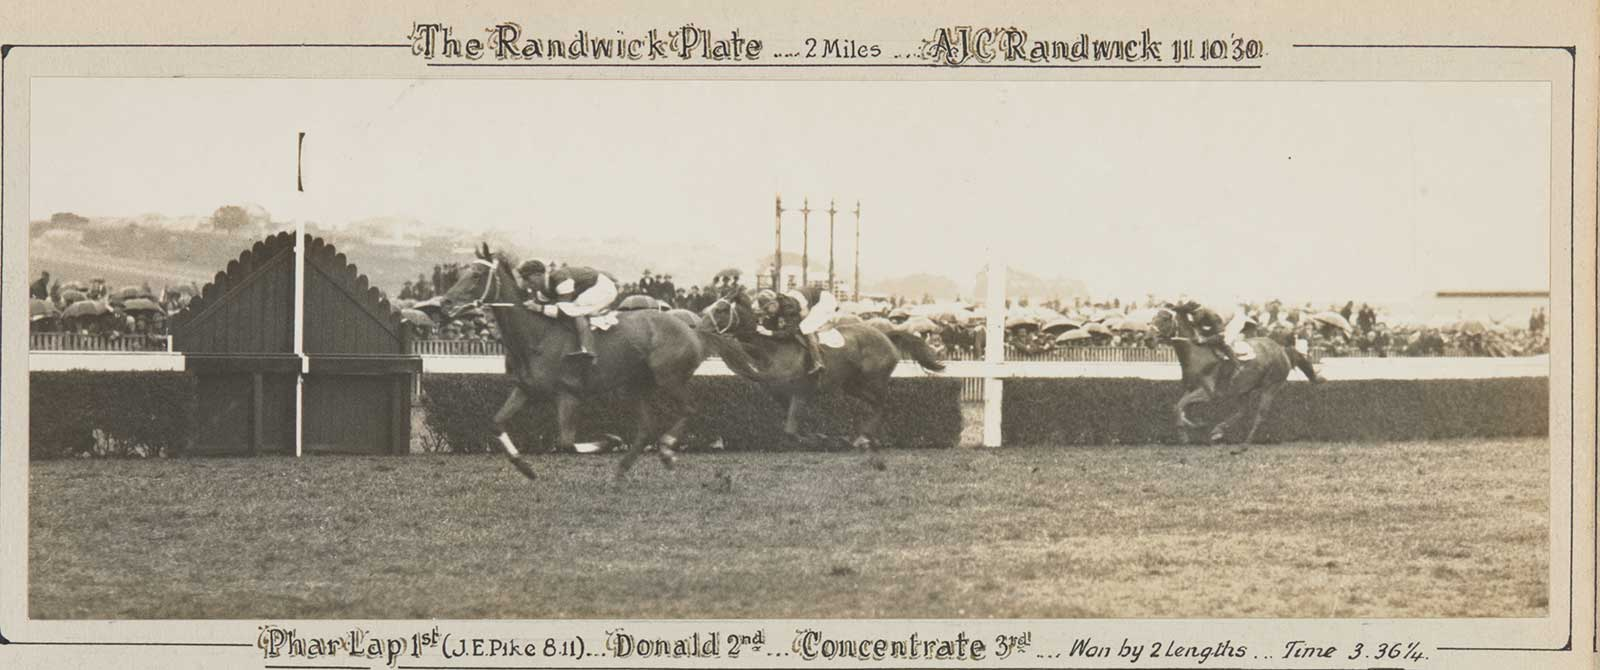 A black and white photo of Phar Lap winning the Randwick Plate, 1930. - click to view larger image